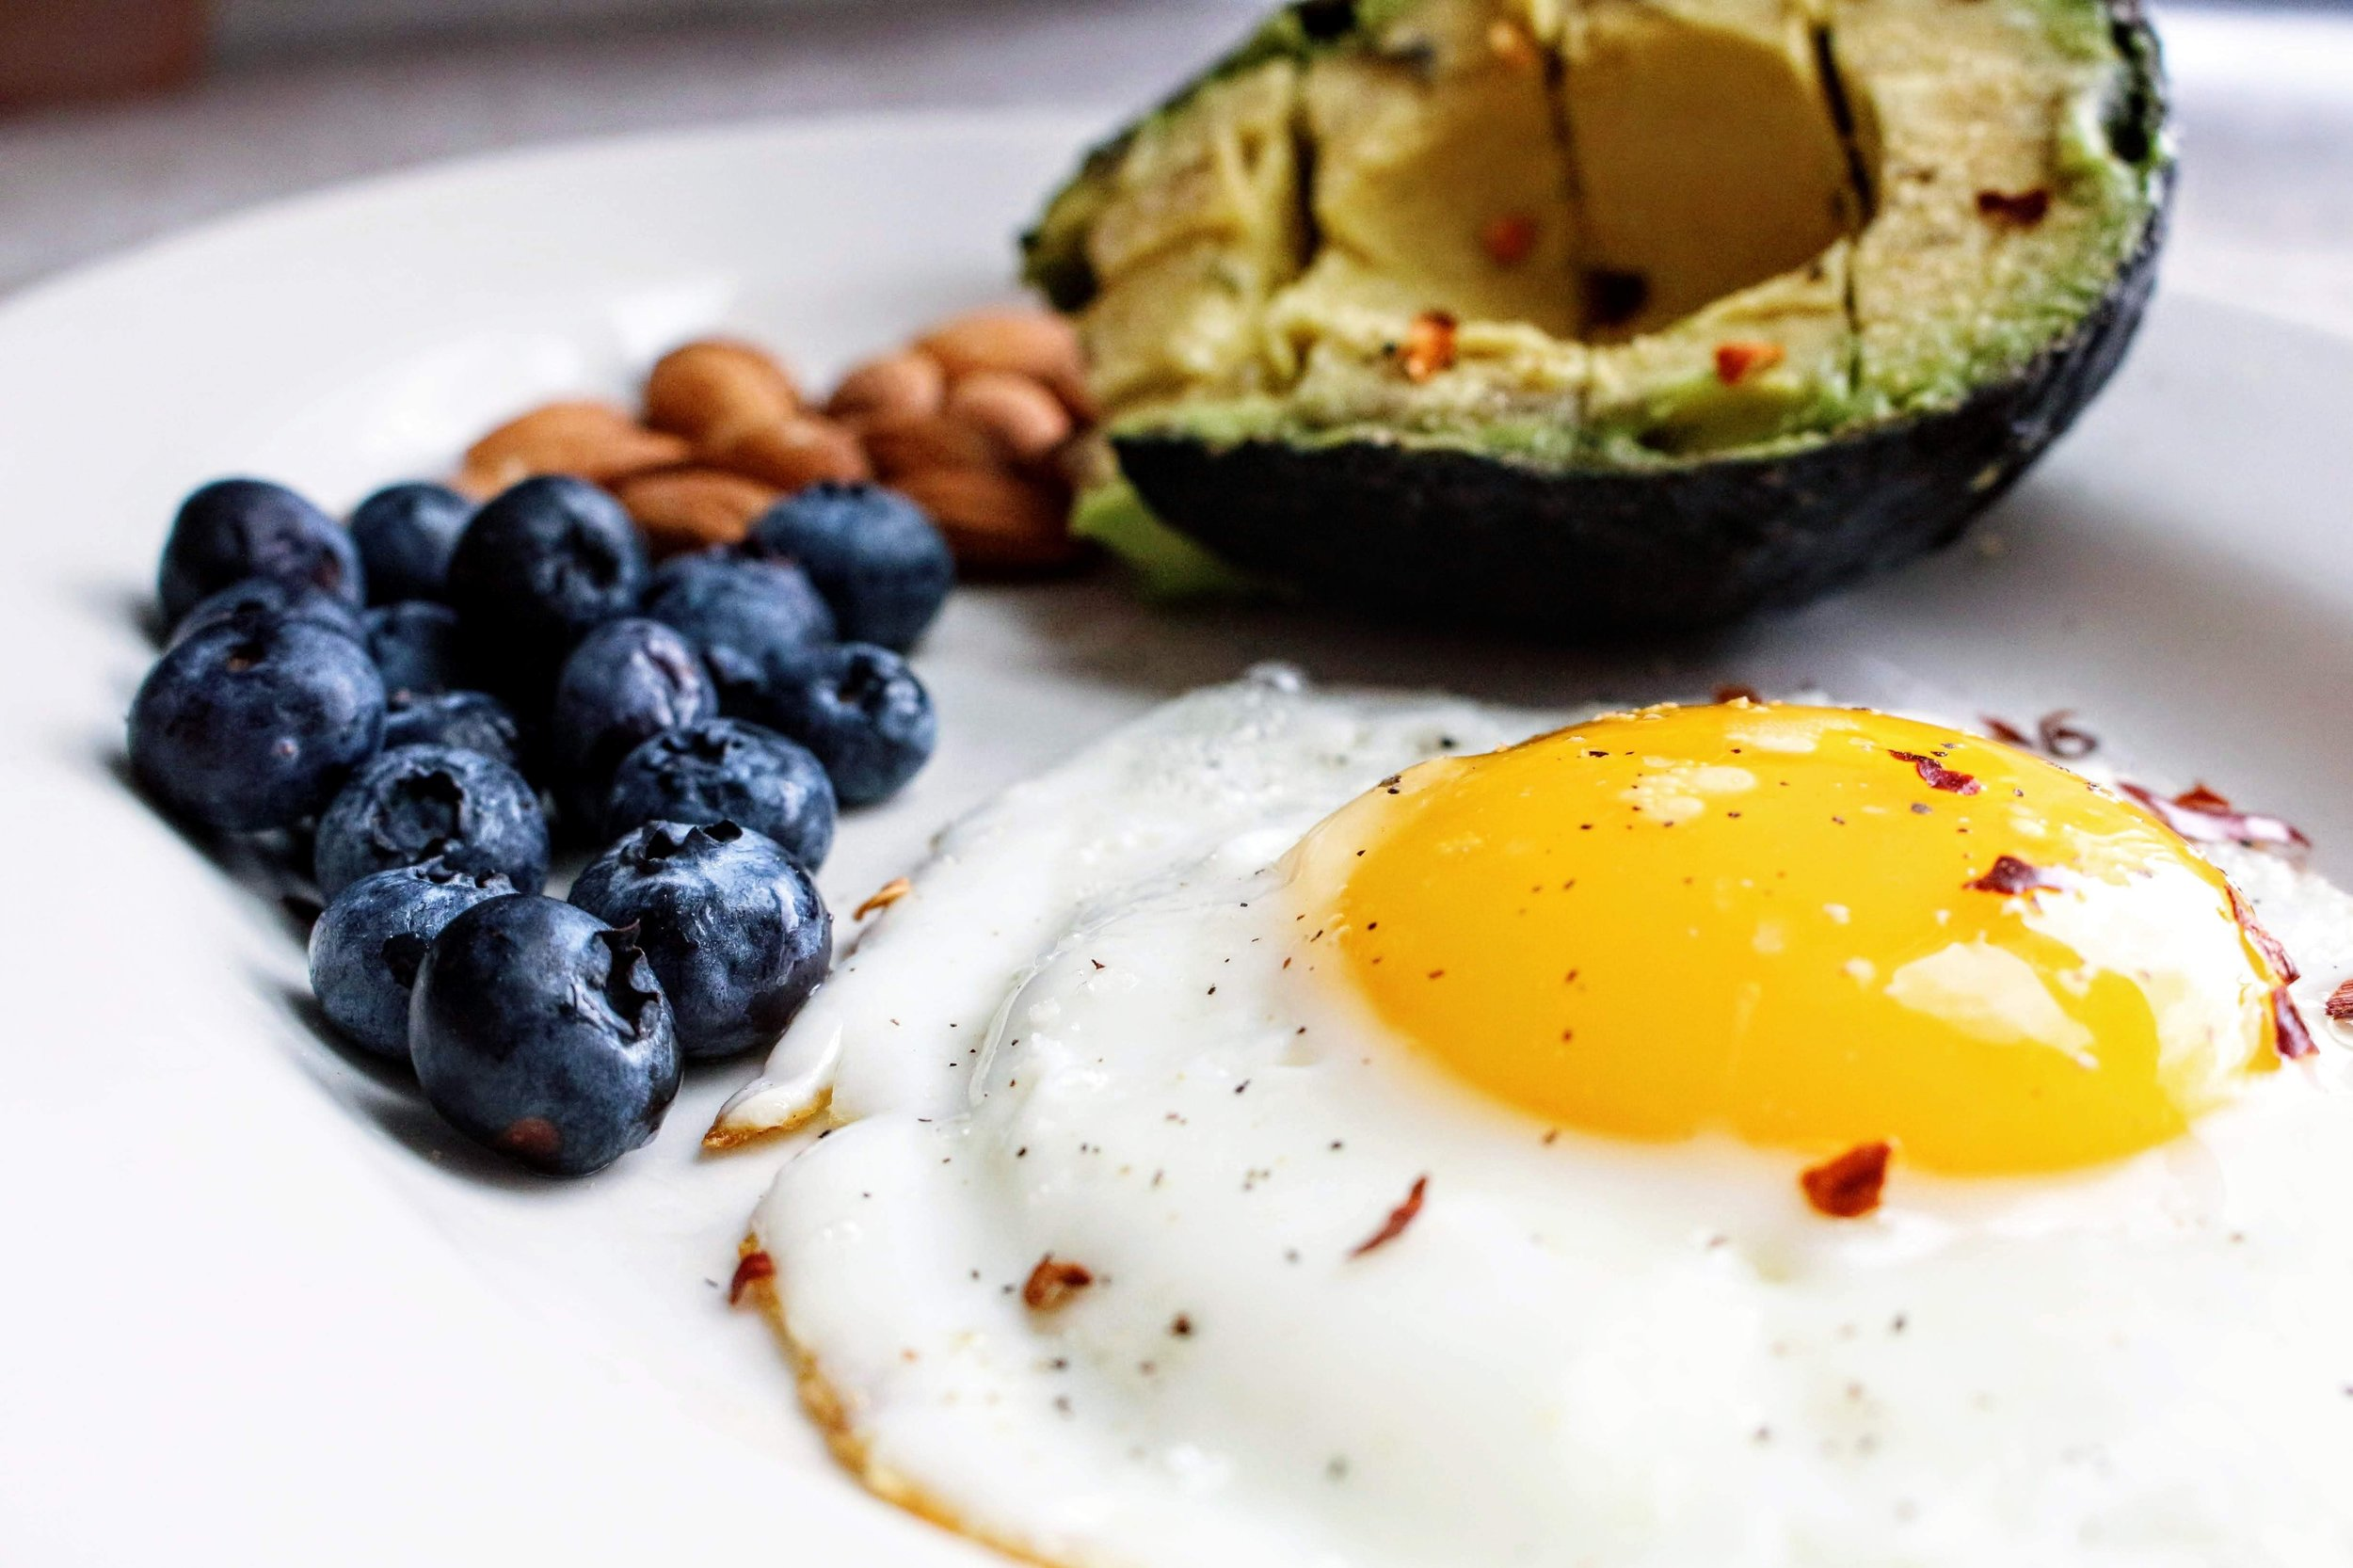 thinking about doing Whole30? Here's what it's really like